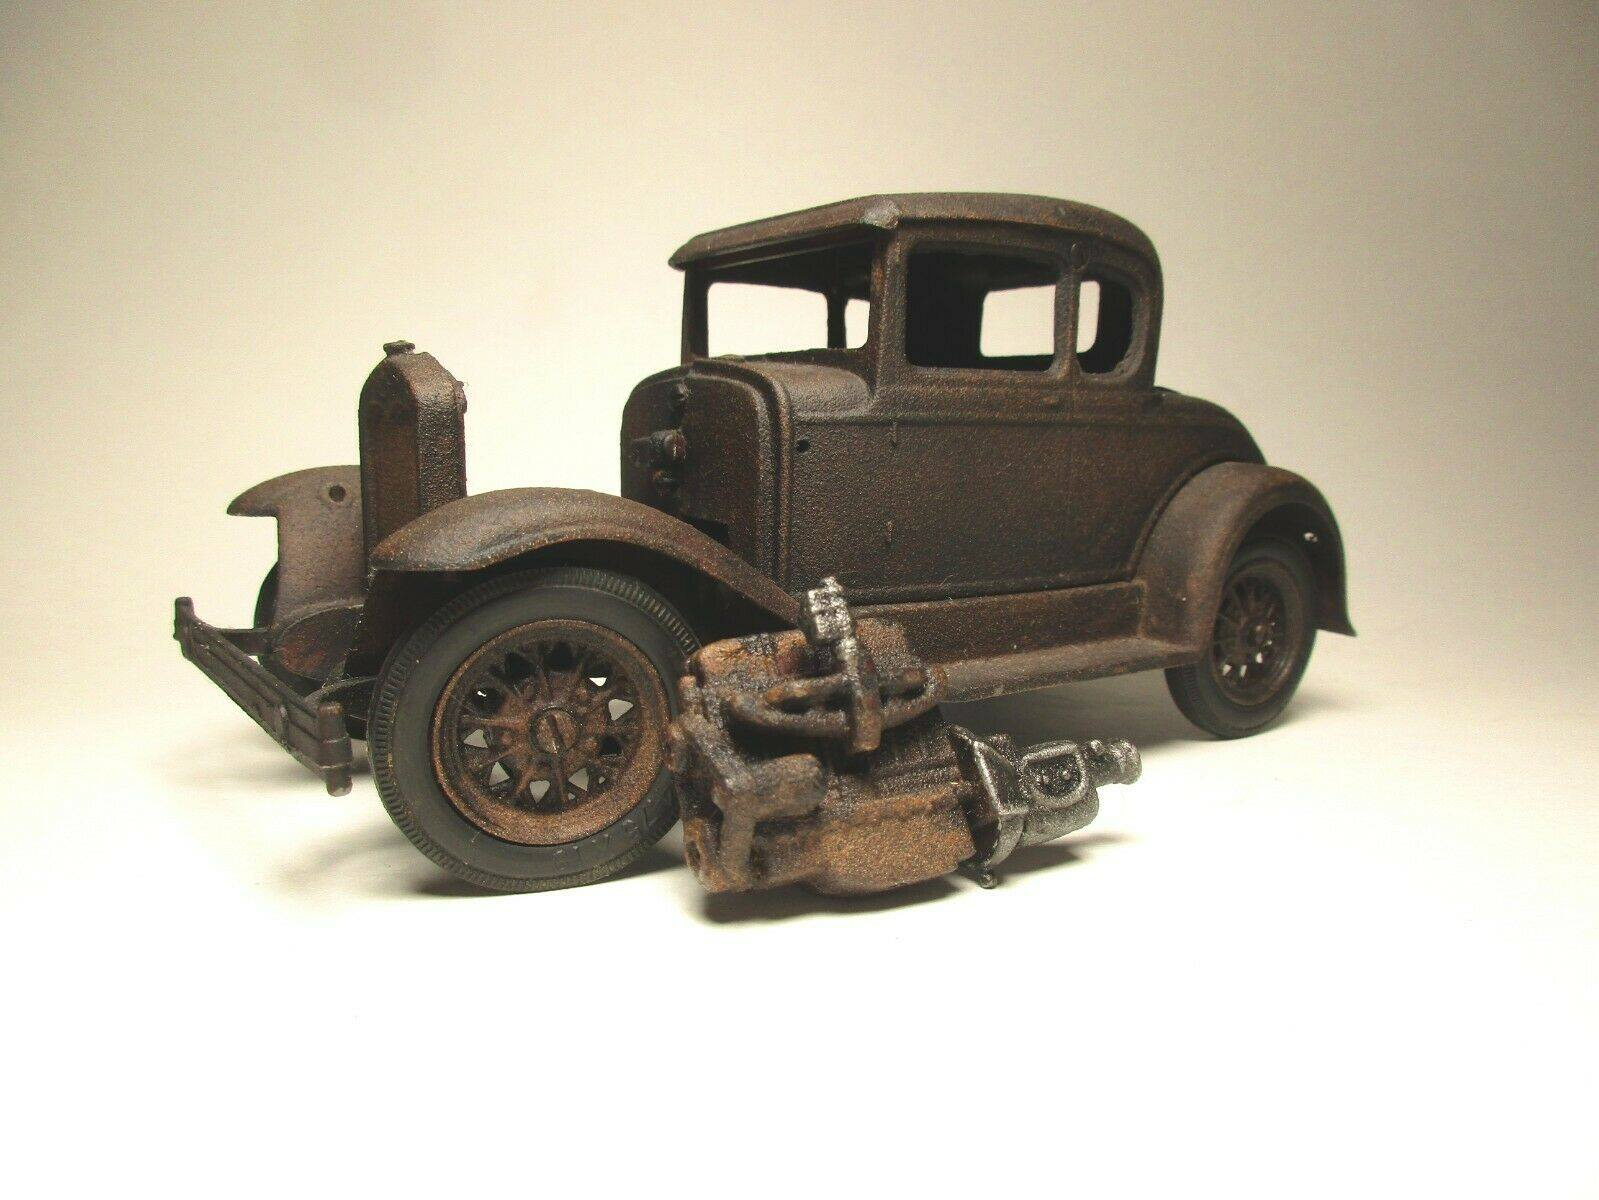 Vintage-Hubley-1932-Ford-Model-A-Coupe-and-Engine---Rusty-Weathered-Barn-Find-5